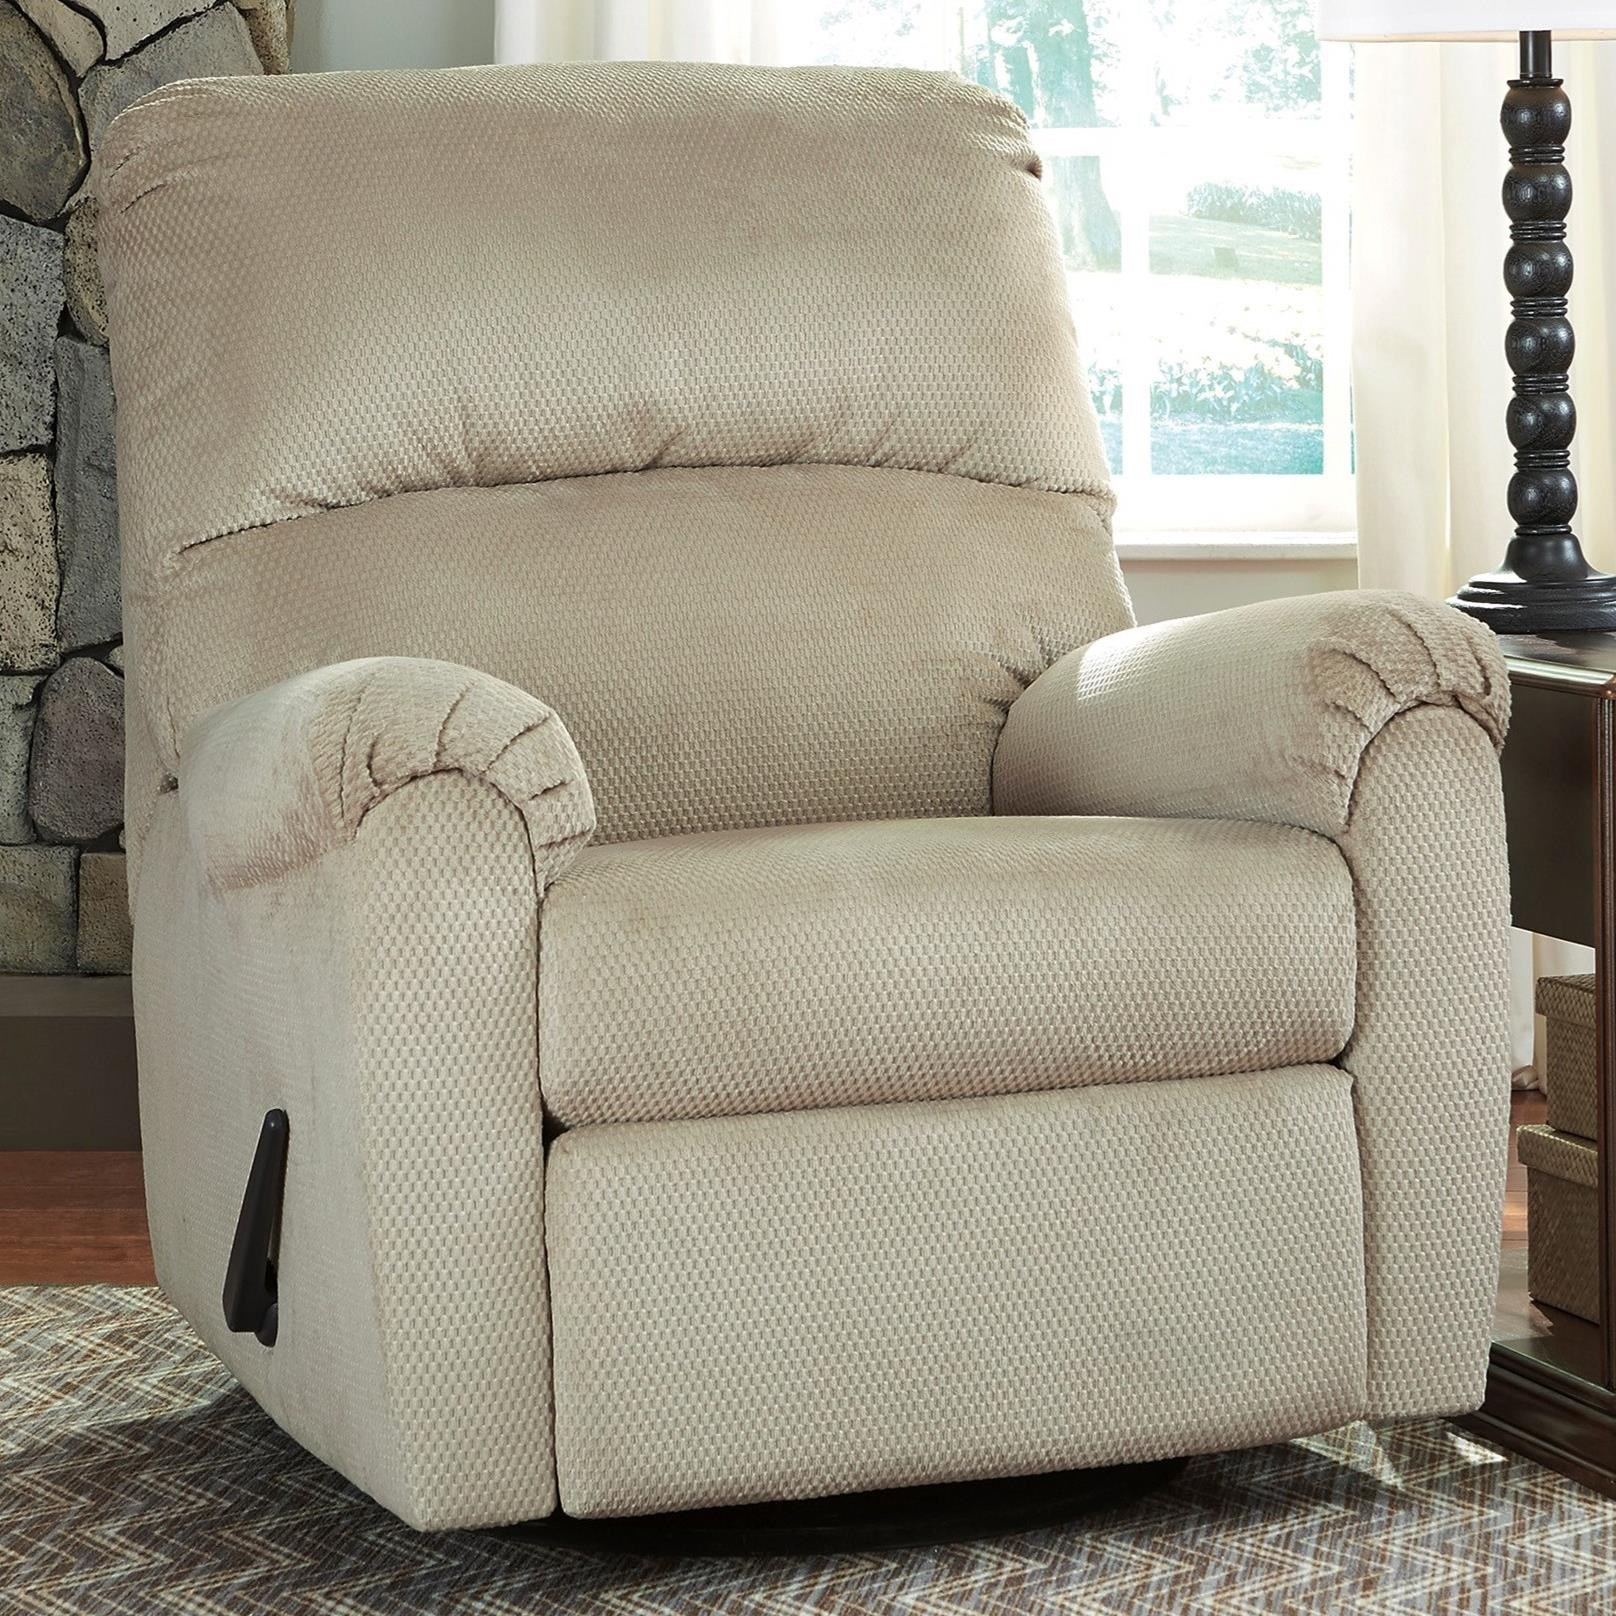 Signature Design by Ashley Bronwyn Swivel Glider Recliner with 360 Degree Swivel & Signature Design by Ashley Bronwyn Swivel Glider Recliner with 360 ... islam-shia.org